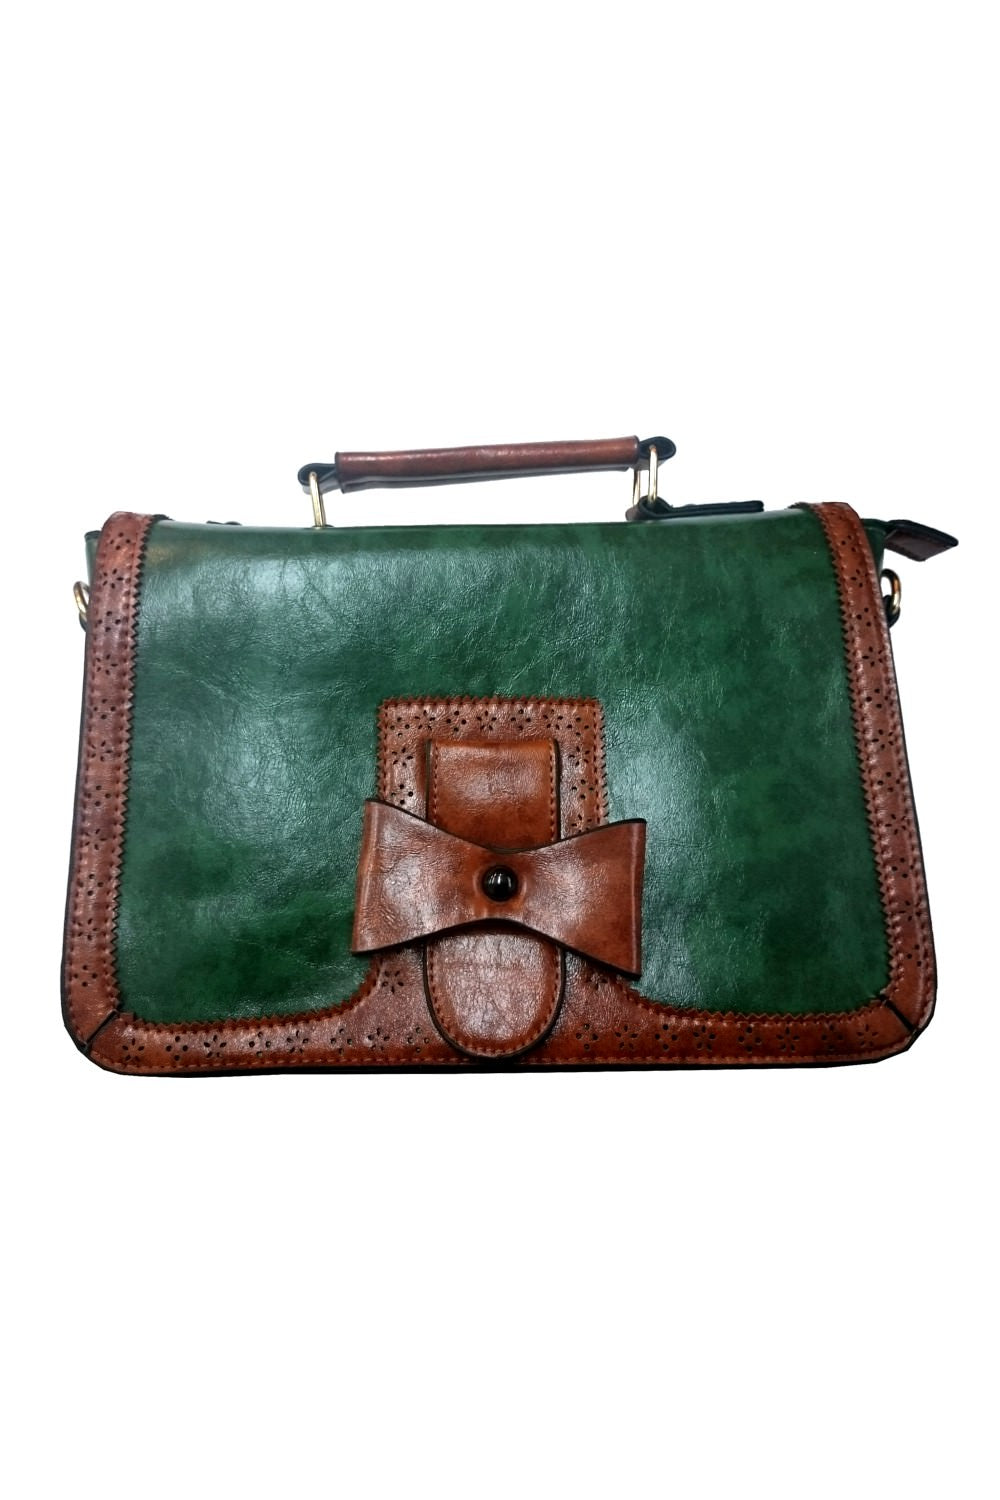 Scandal Messenger Bag by Banned in Olive